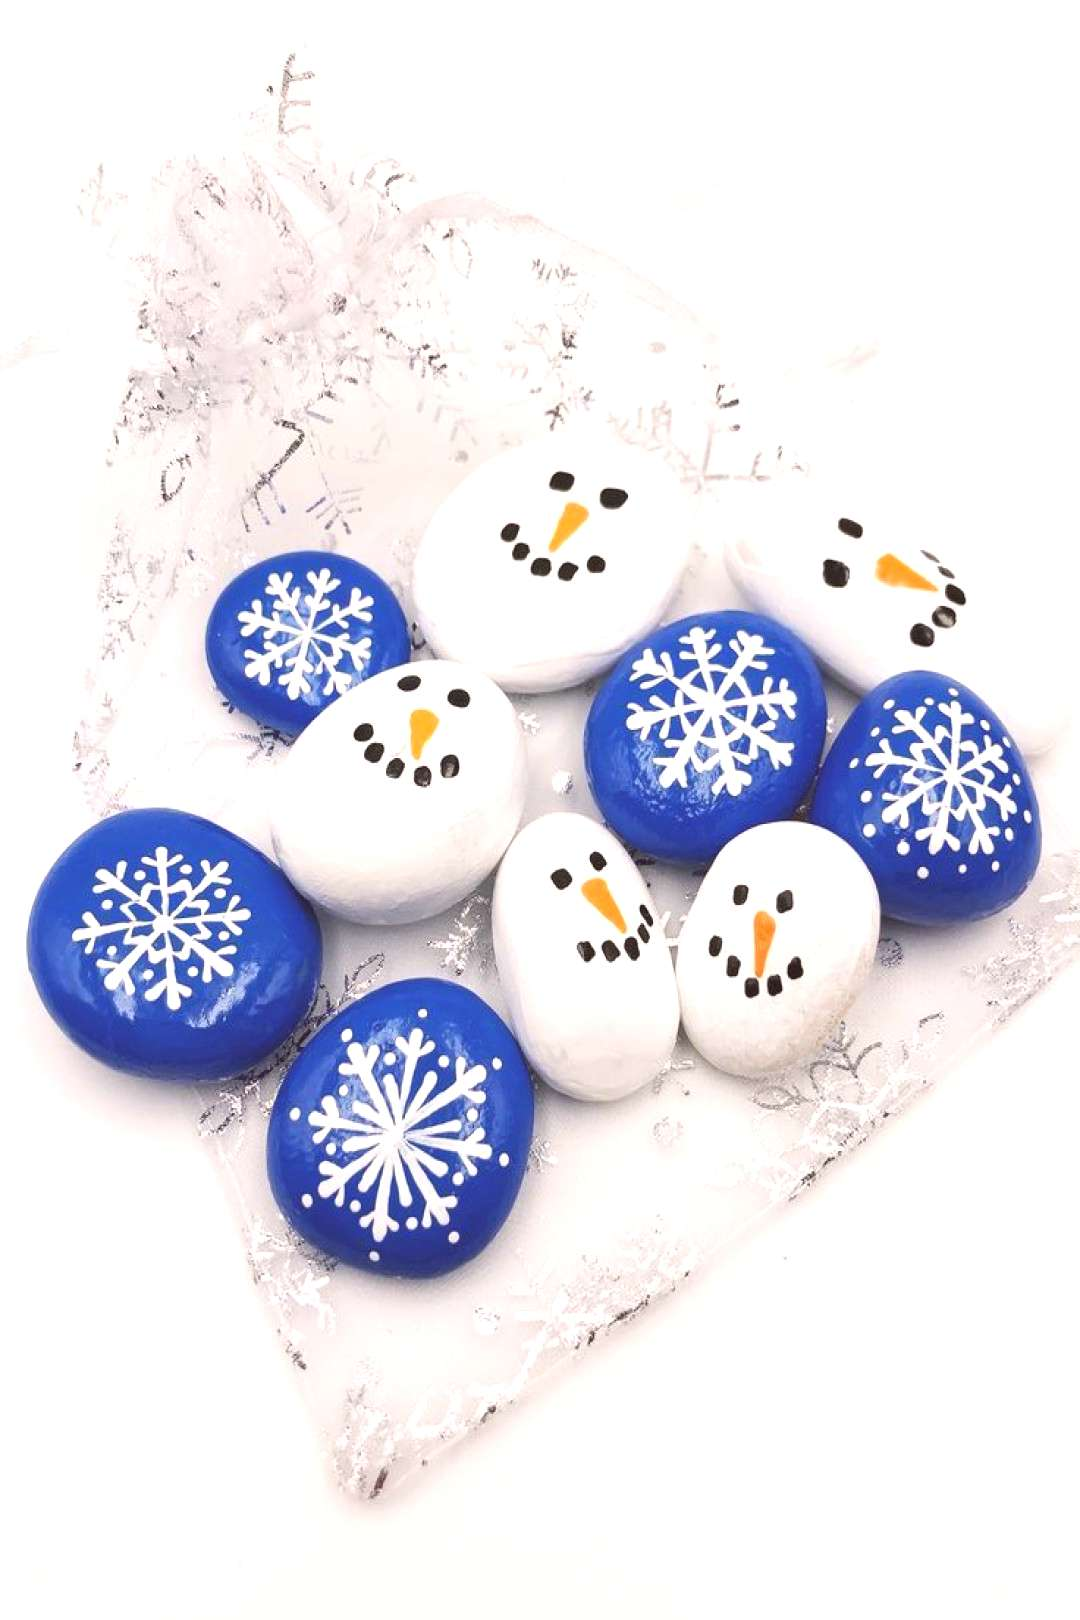 This Set of 10 snowflake and snowman painted pebbles is a great tool for sorting, matching, and pre